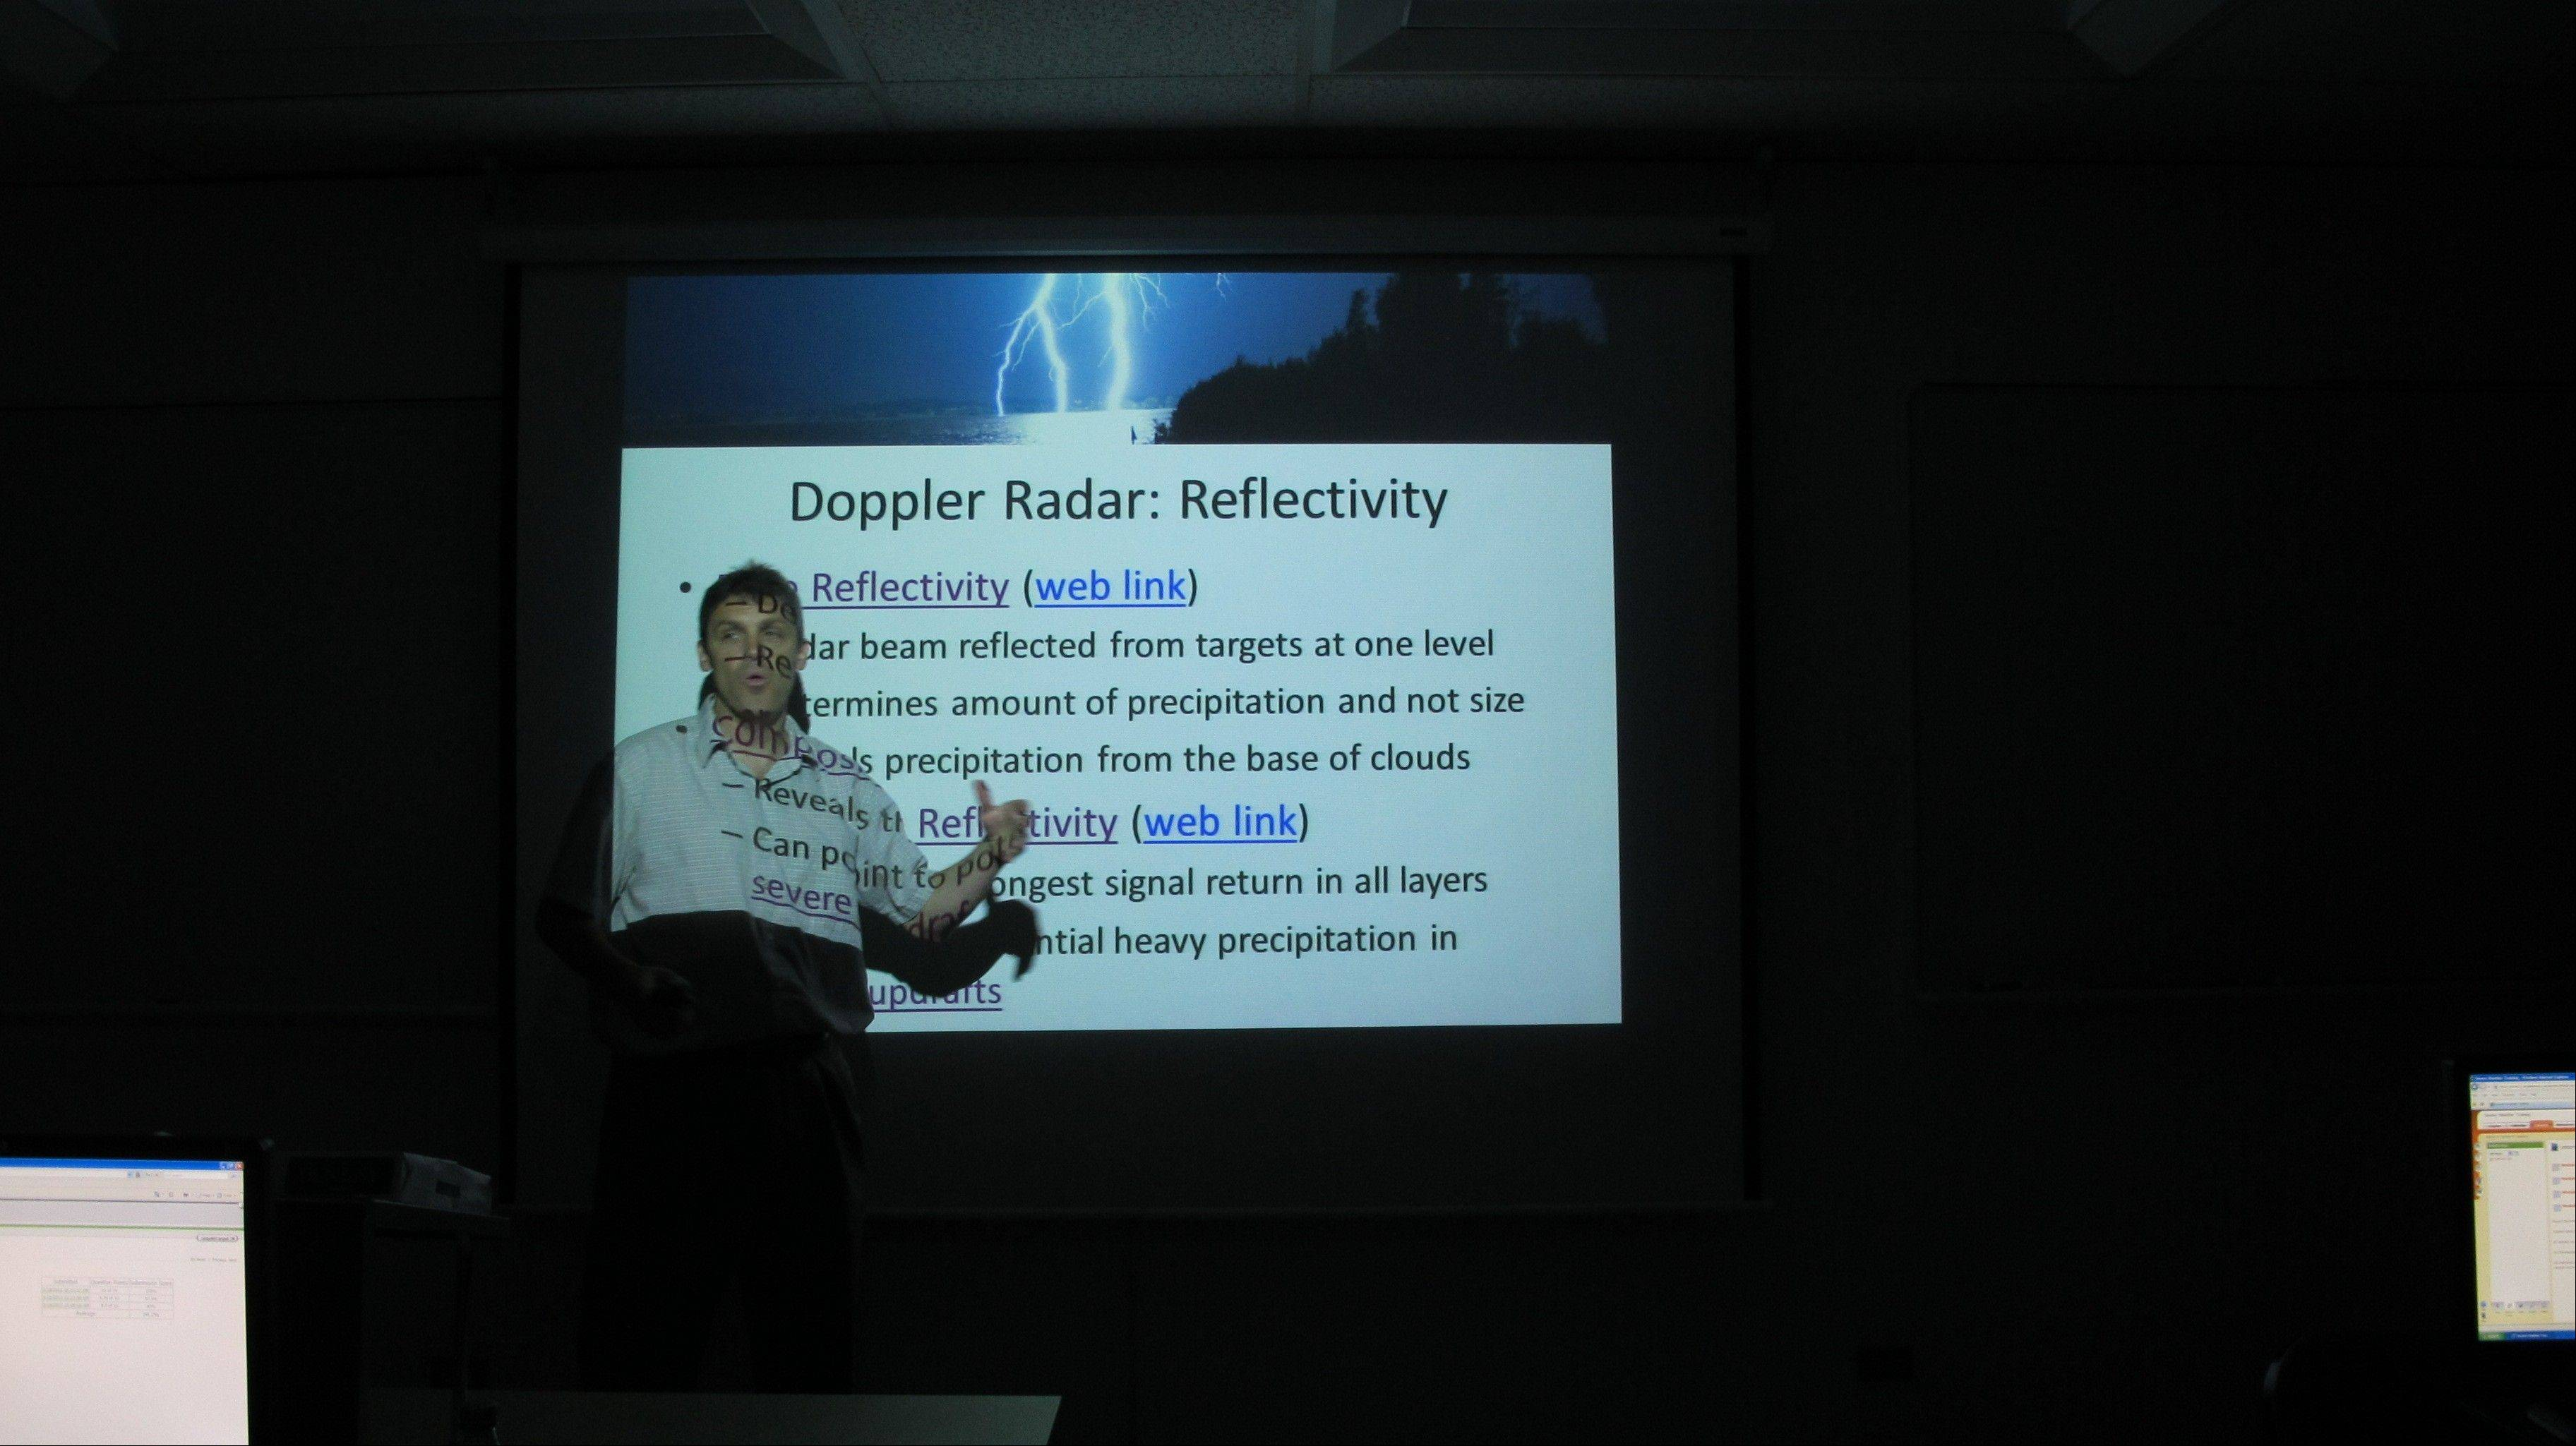 MCC Earth Science instructor Paul Hamill explains an in-depth concept of Doppler radar to Crystal Lake first responders and city employees during a severe weather training session held recently at the College. He explained how to read Doppler radar correctly and what patterns to look for when assessing severe storms.